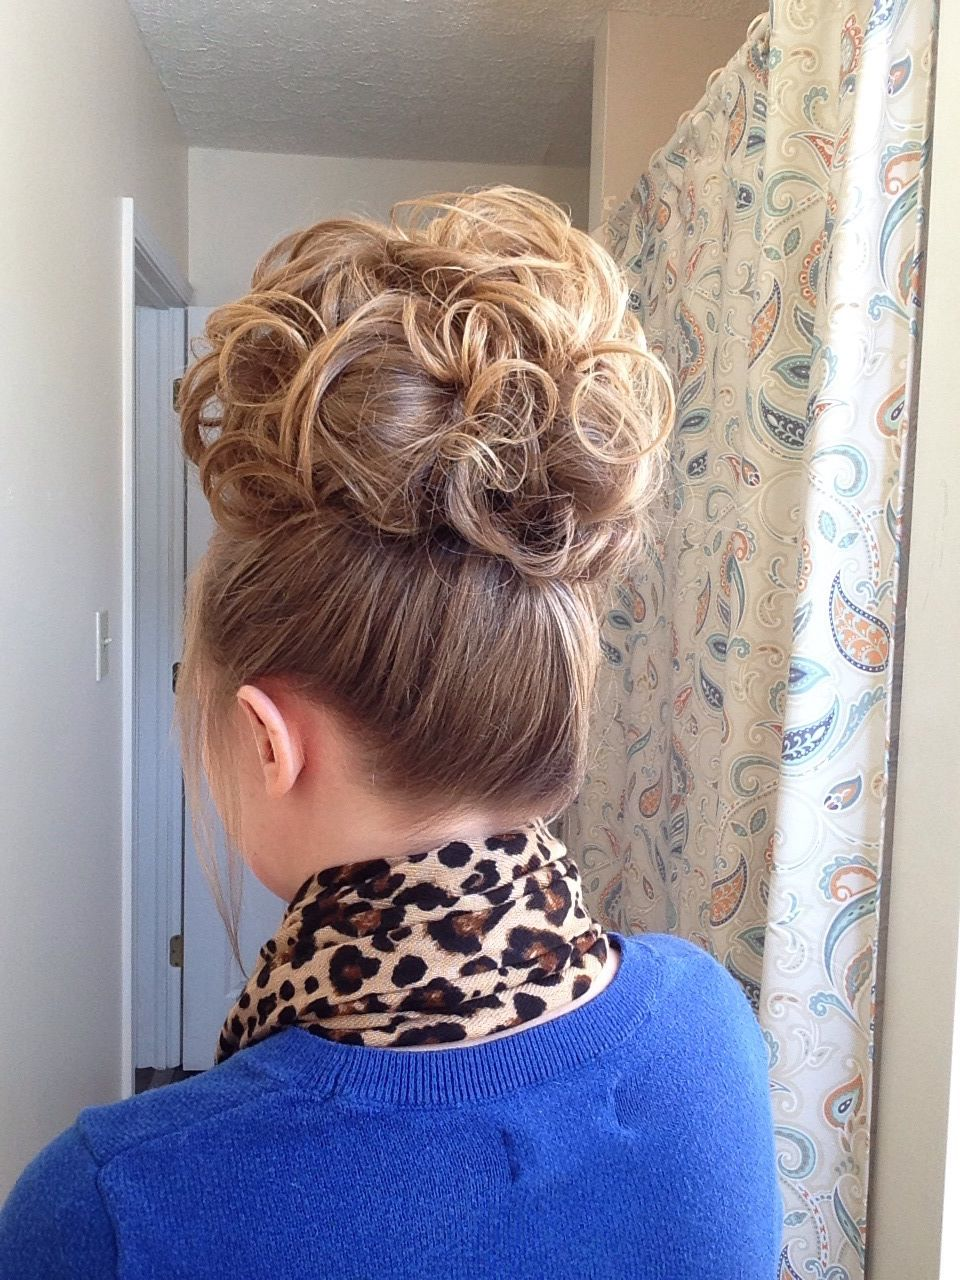 Ha Hair Accessories For Apostolic Long Hair - A little smaller see more sunday night hair